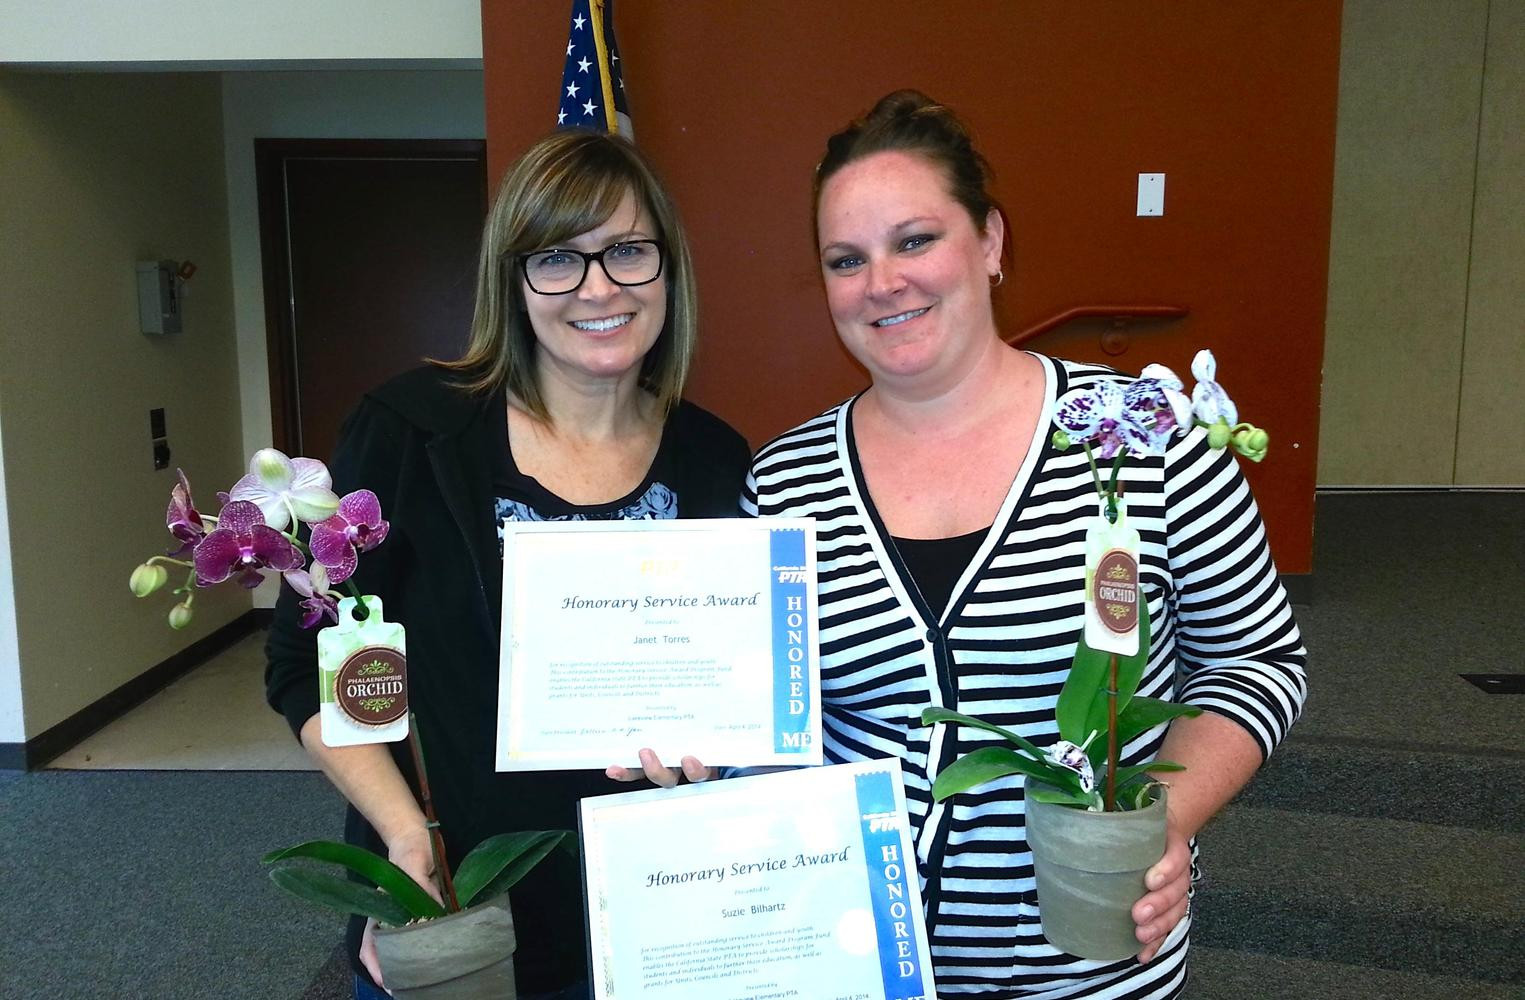 Mrs. Torres and Mrs. Bilhartz receiving PTA Honorary Service Awards